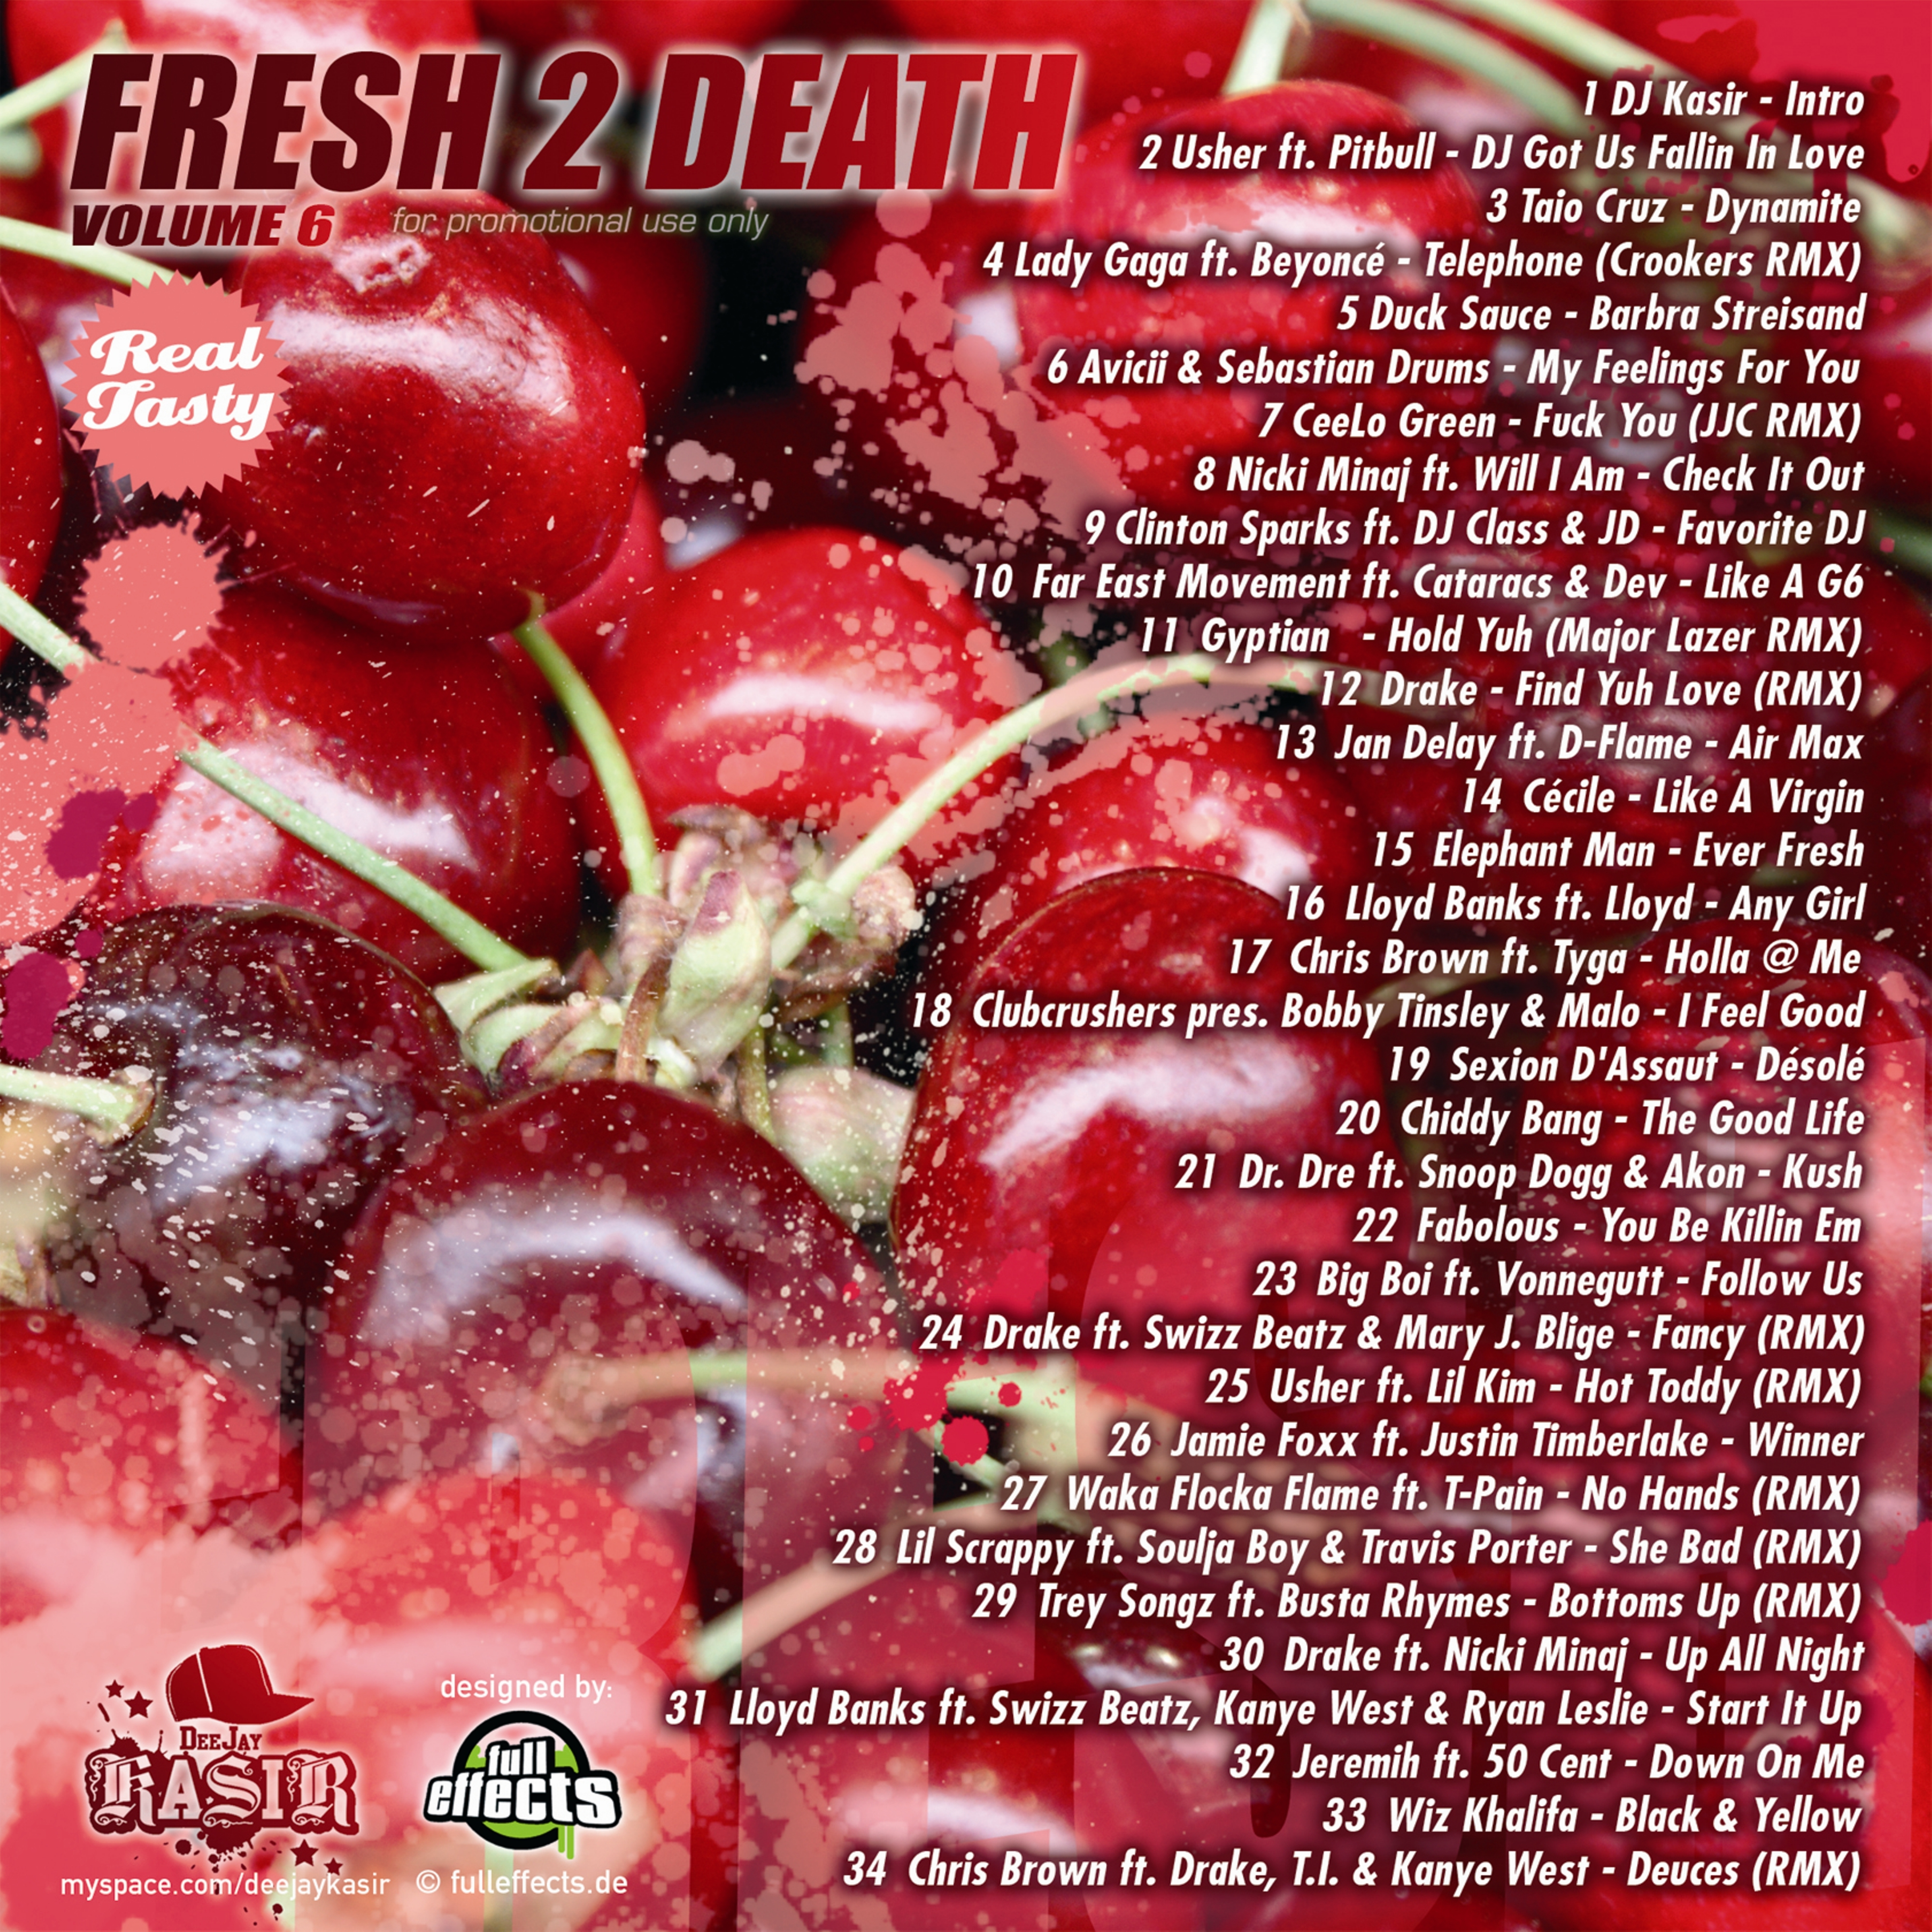 Fresh 2 Death vol. 6